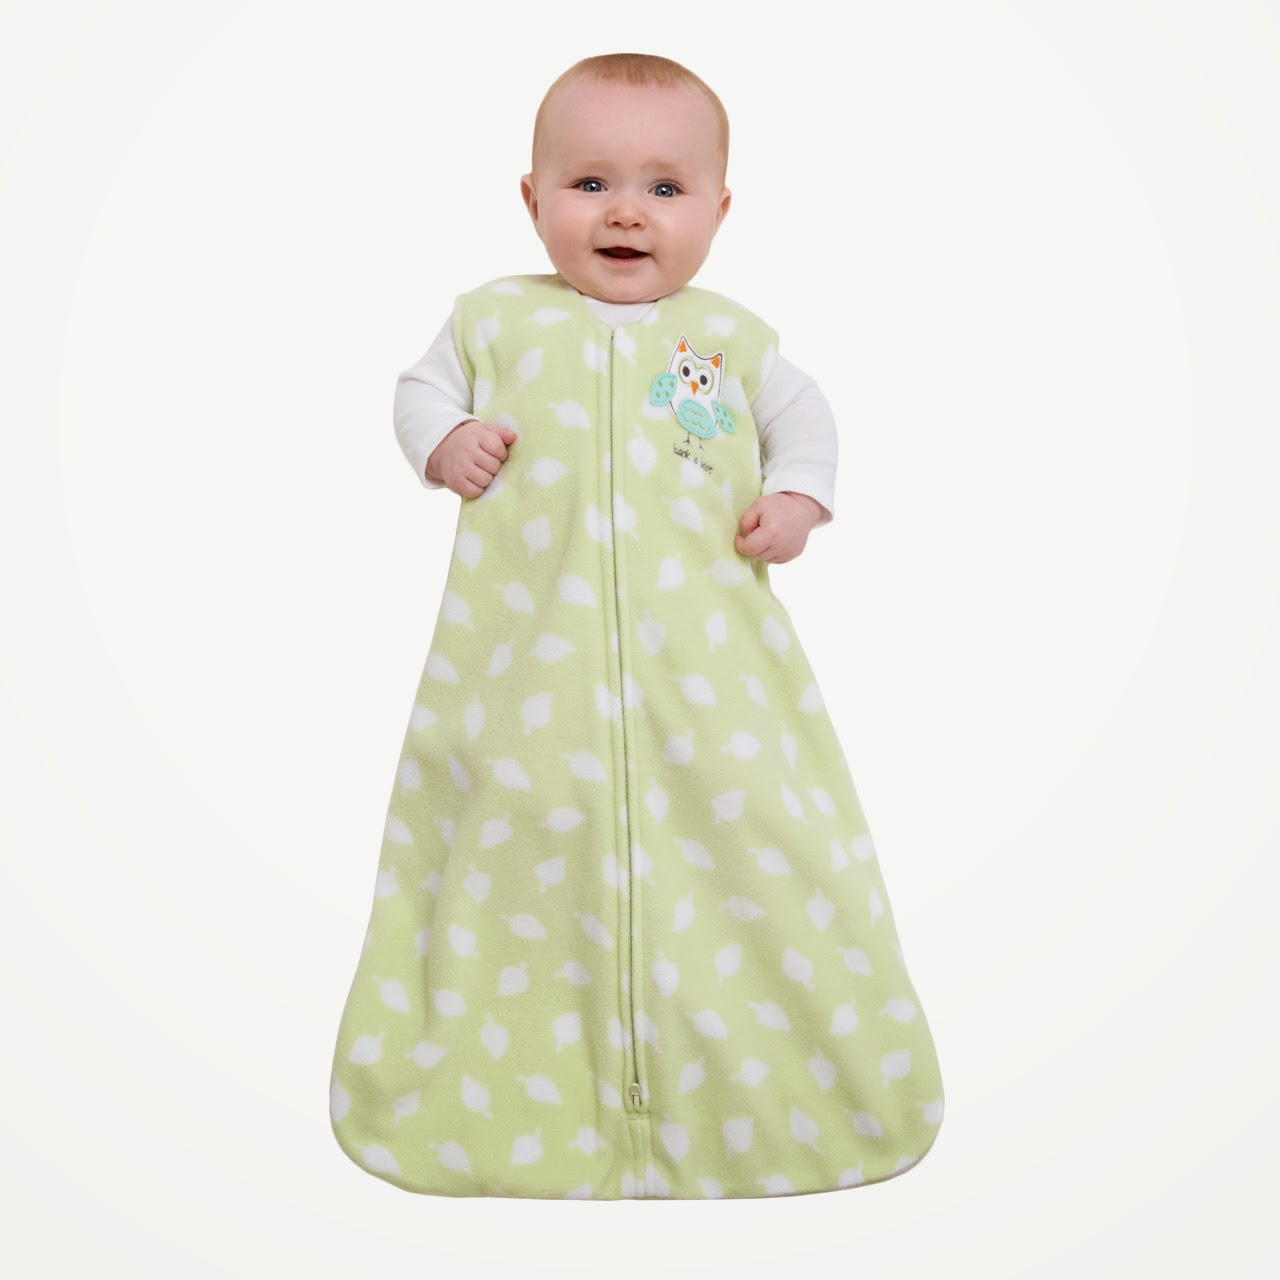 Baby Wearing Green Wearable Blanket